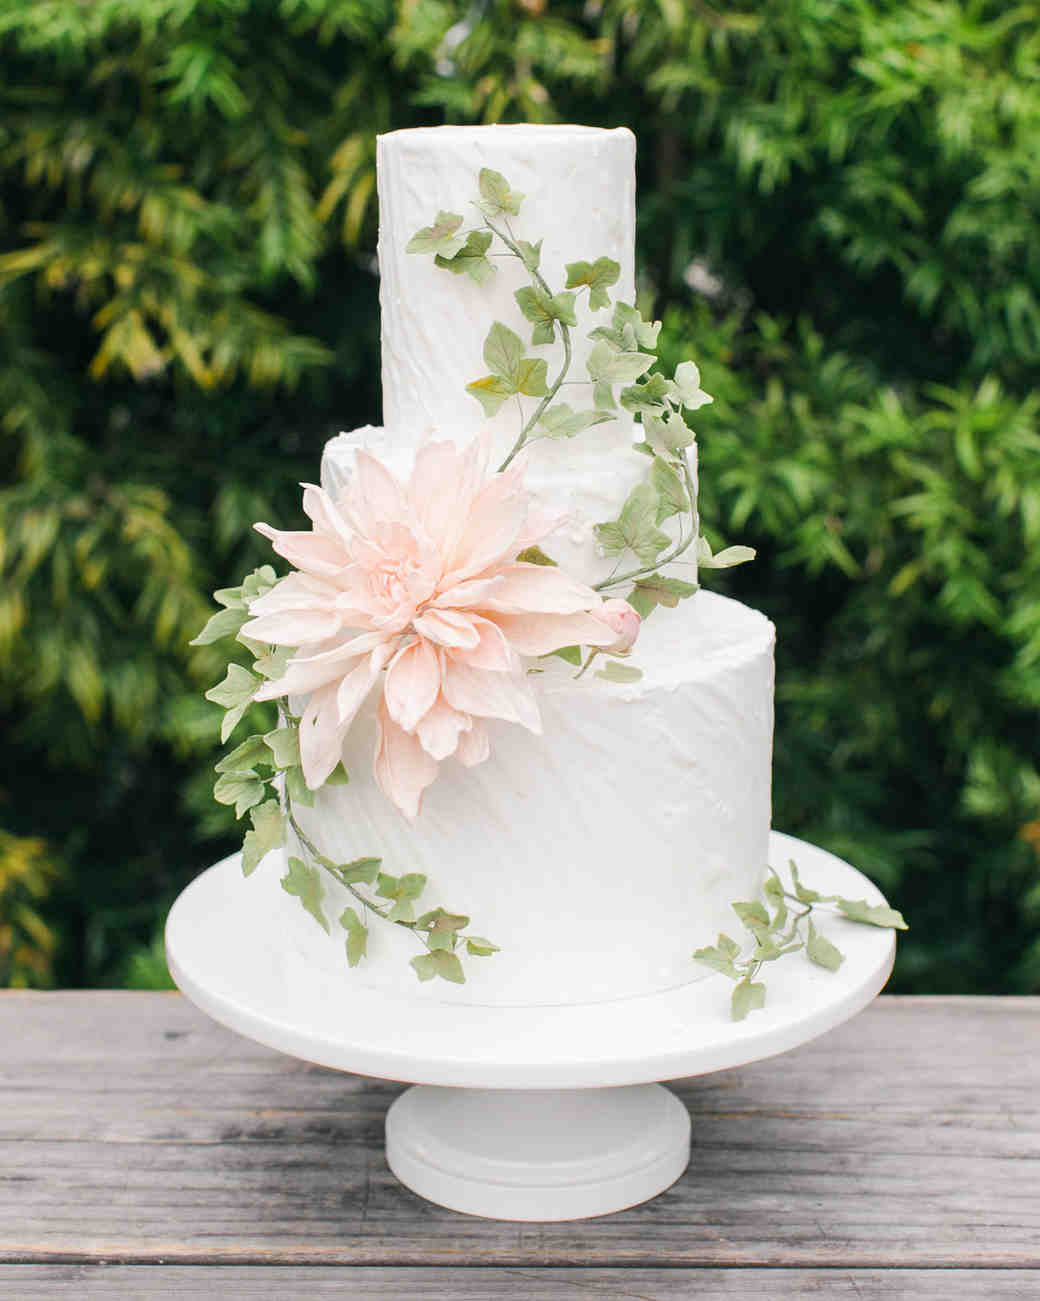 Sugar Flowers Wedding Cakes  Wedding Cakes with Sugar Flowers That Look Incredibly Real